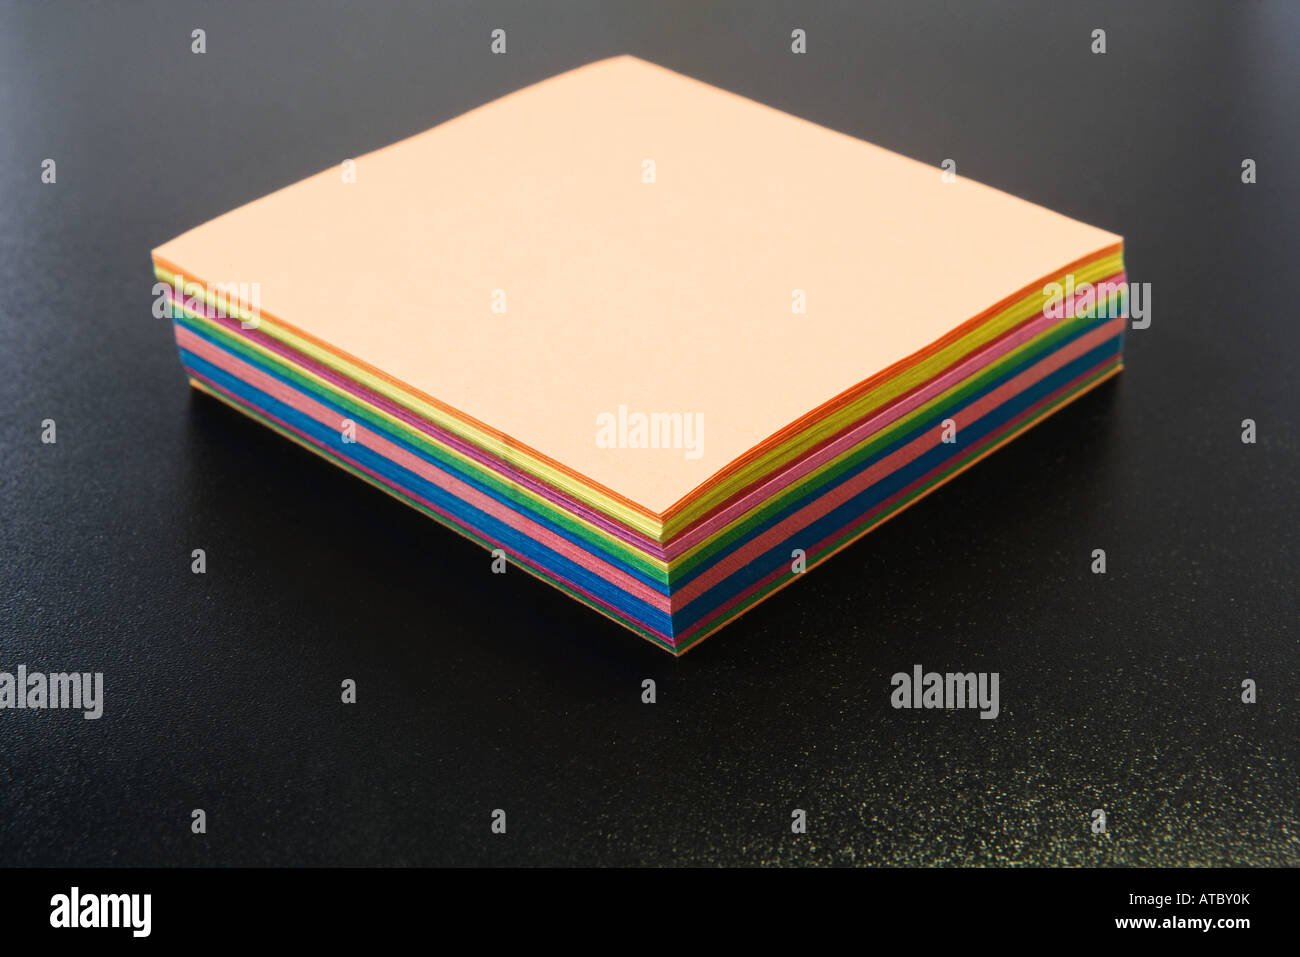 Stack of multicolored paper, close-up - Stock Image